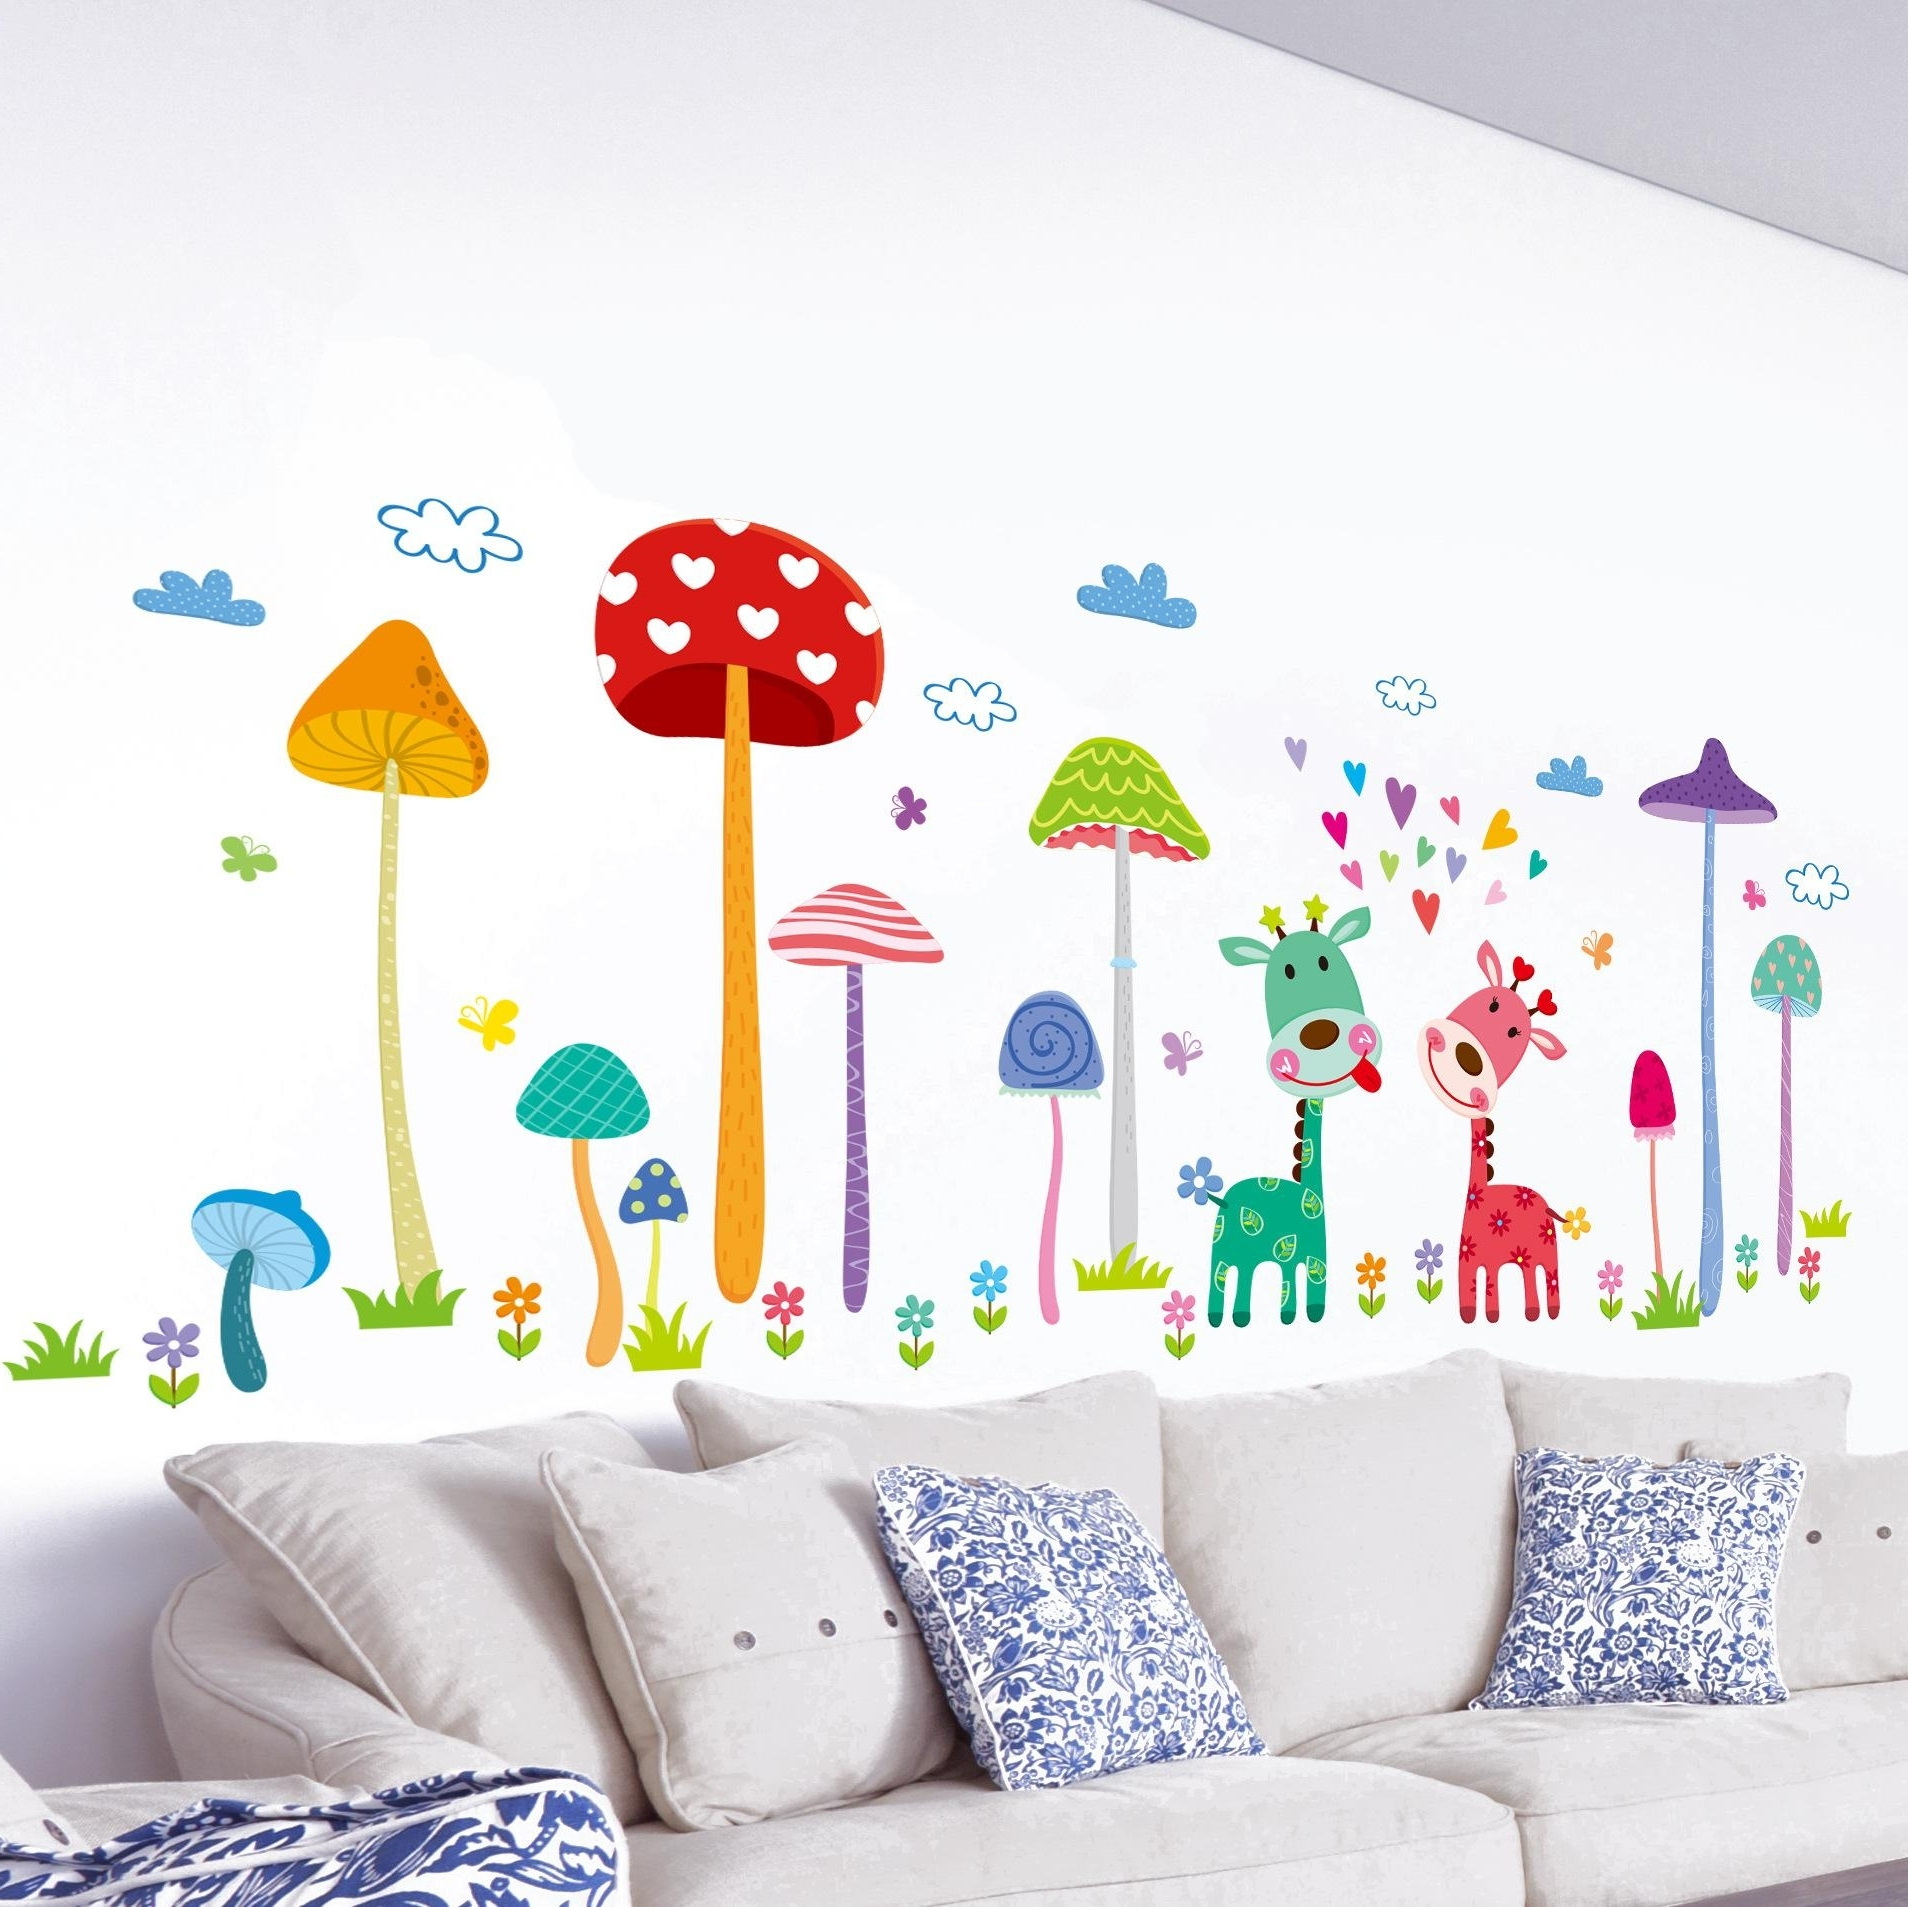 Children Wall Art In Most Up To Date Forest Mushroom Deer Home Wall Art Mural Decor Kids Babies Room (View 2 of 15)